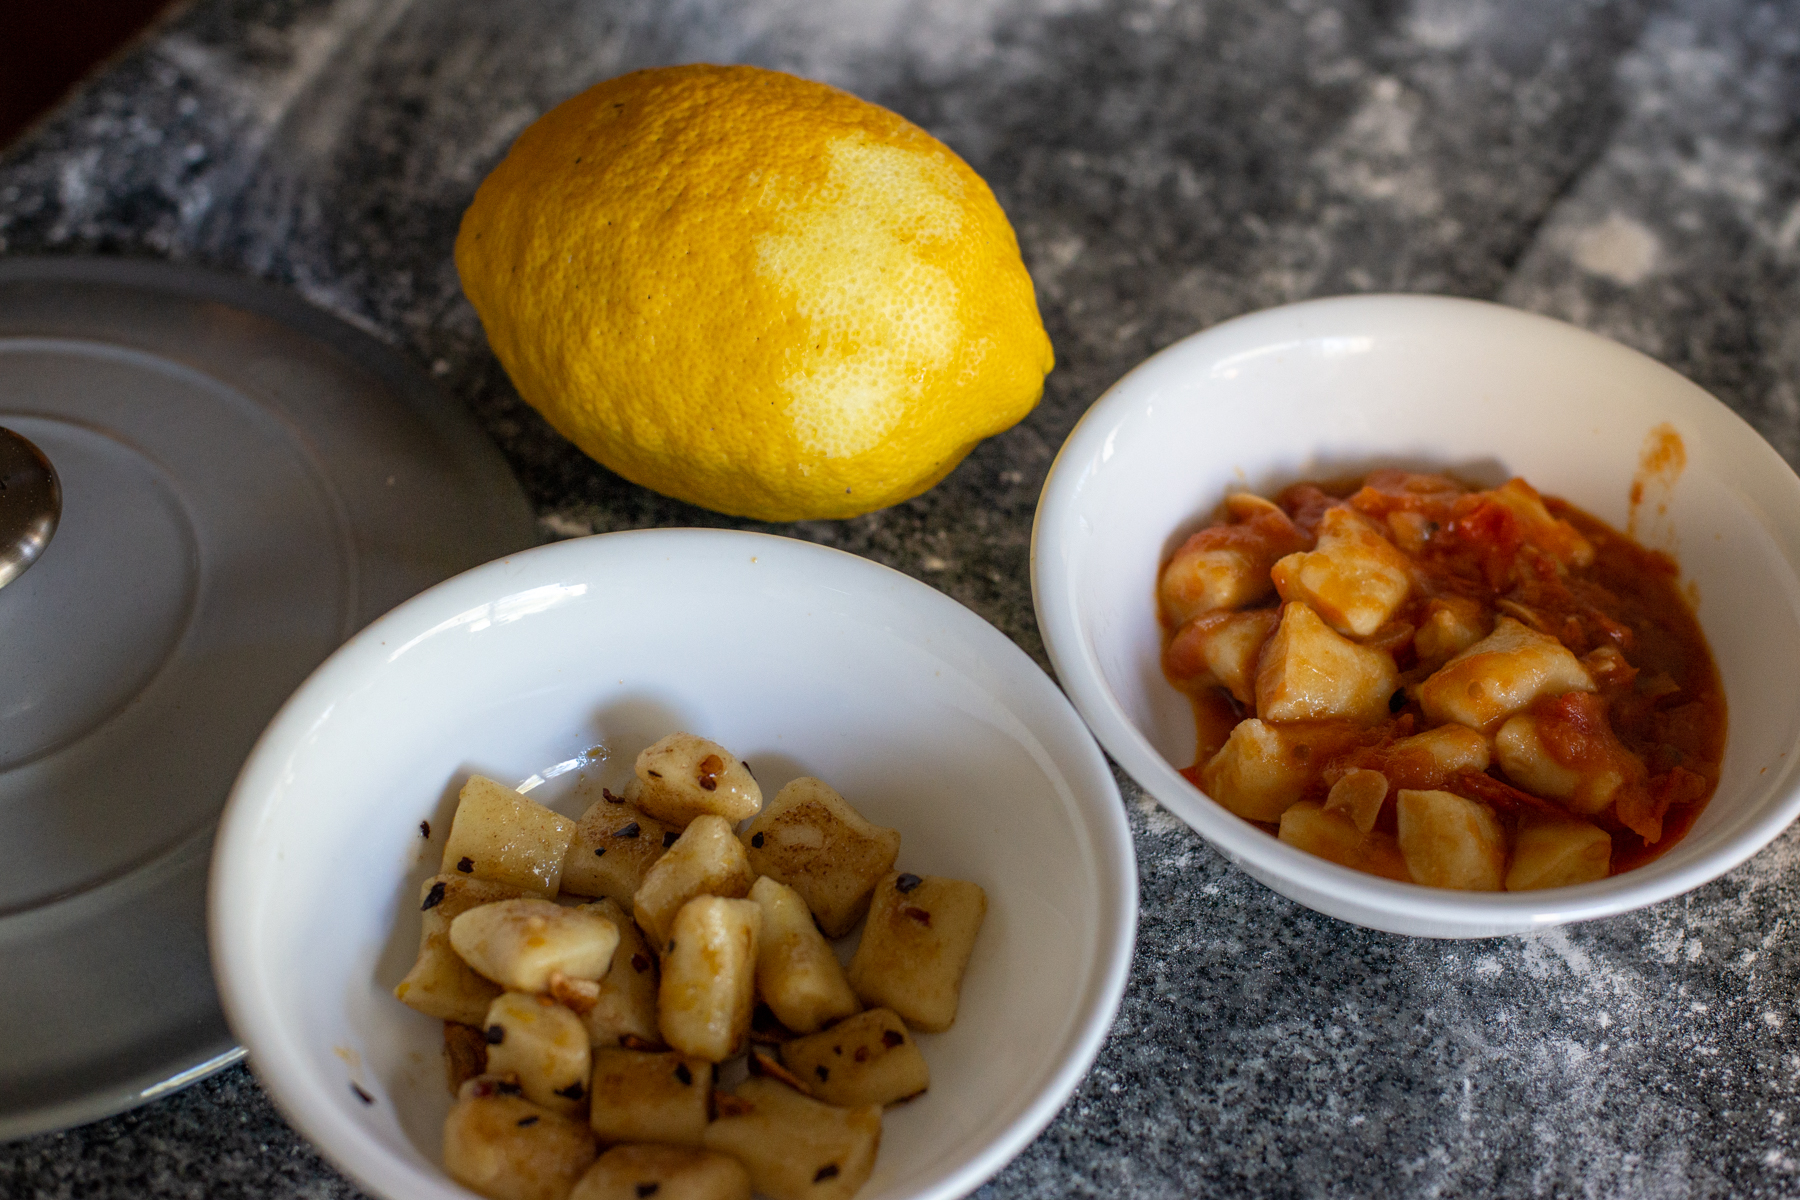 Lemon, garlic and chilli on the left, tomato on the right.